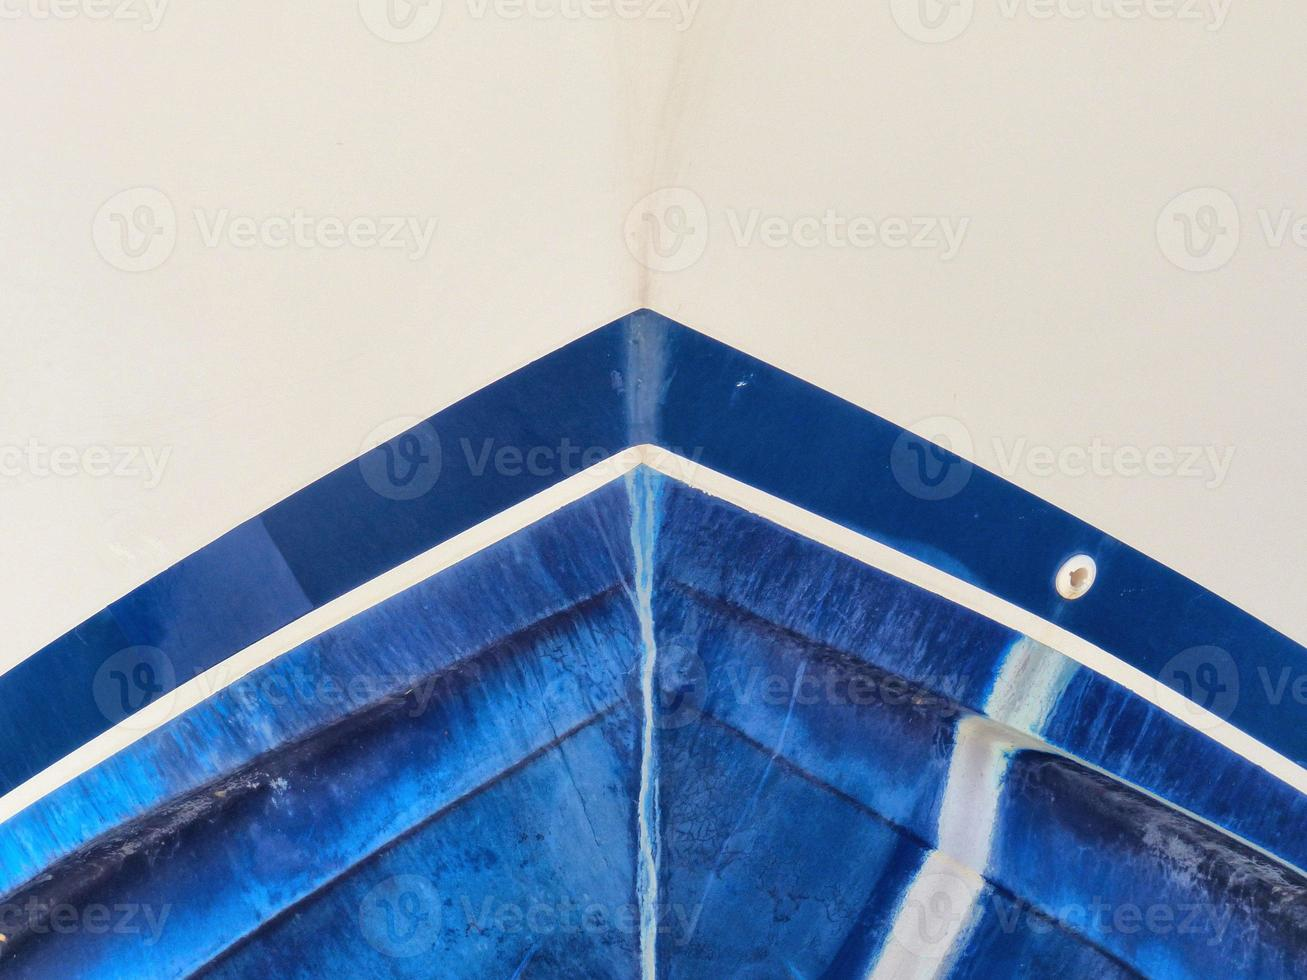 The blue boat photo